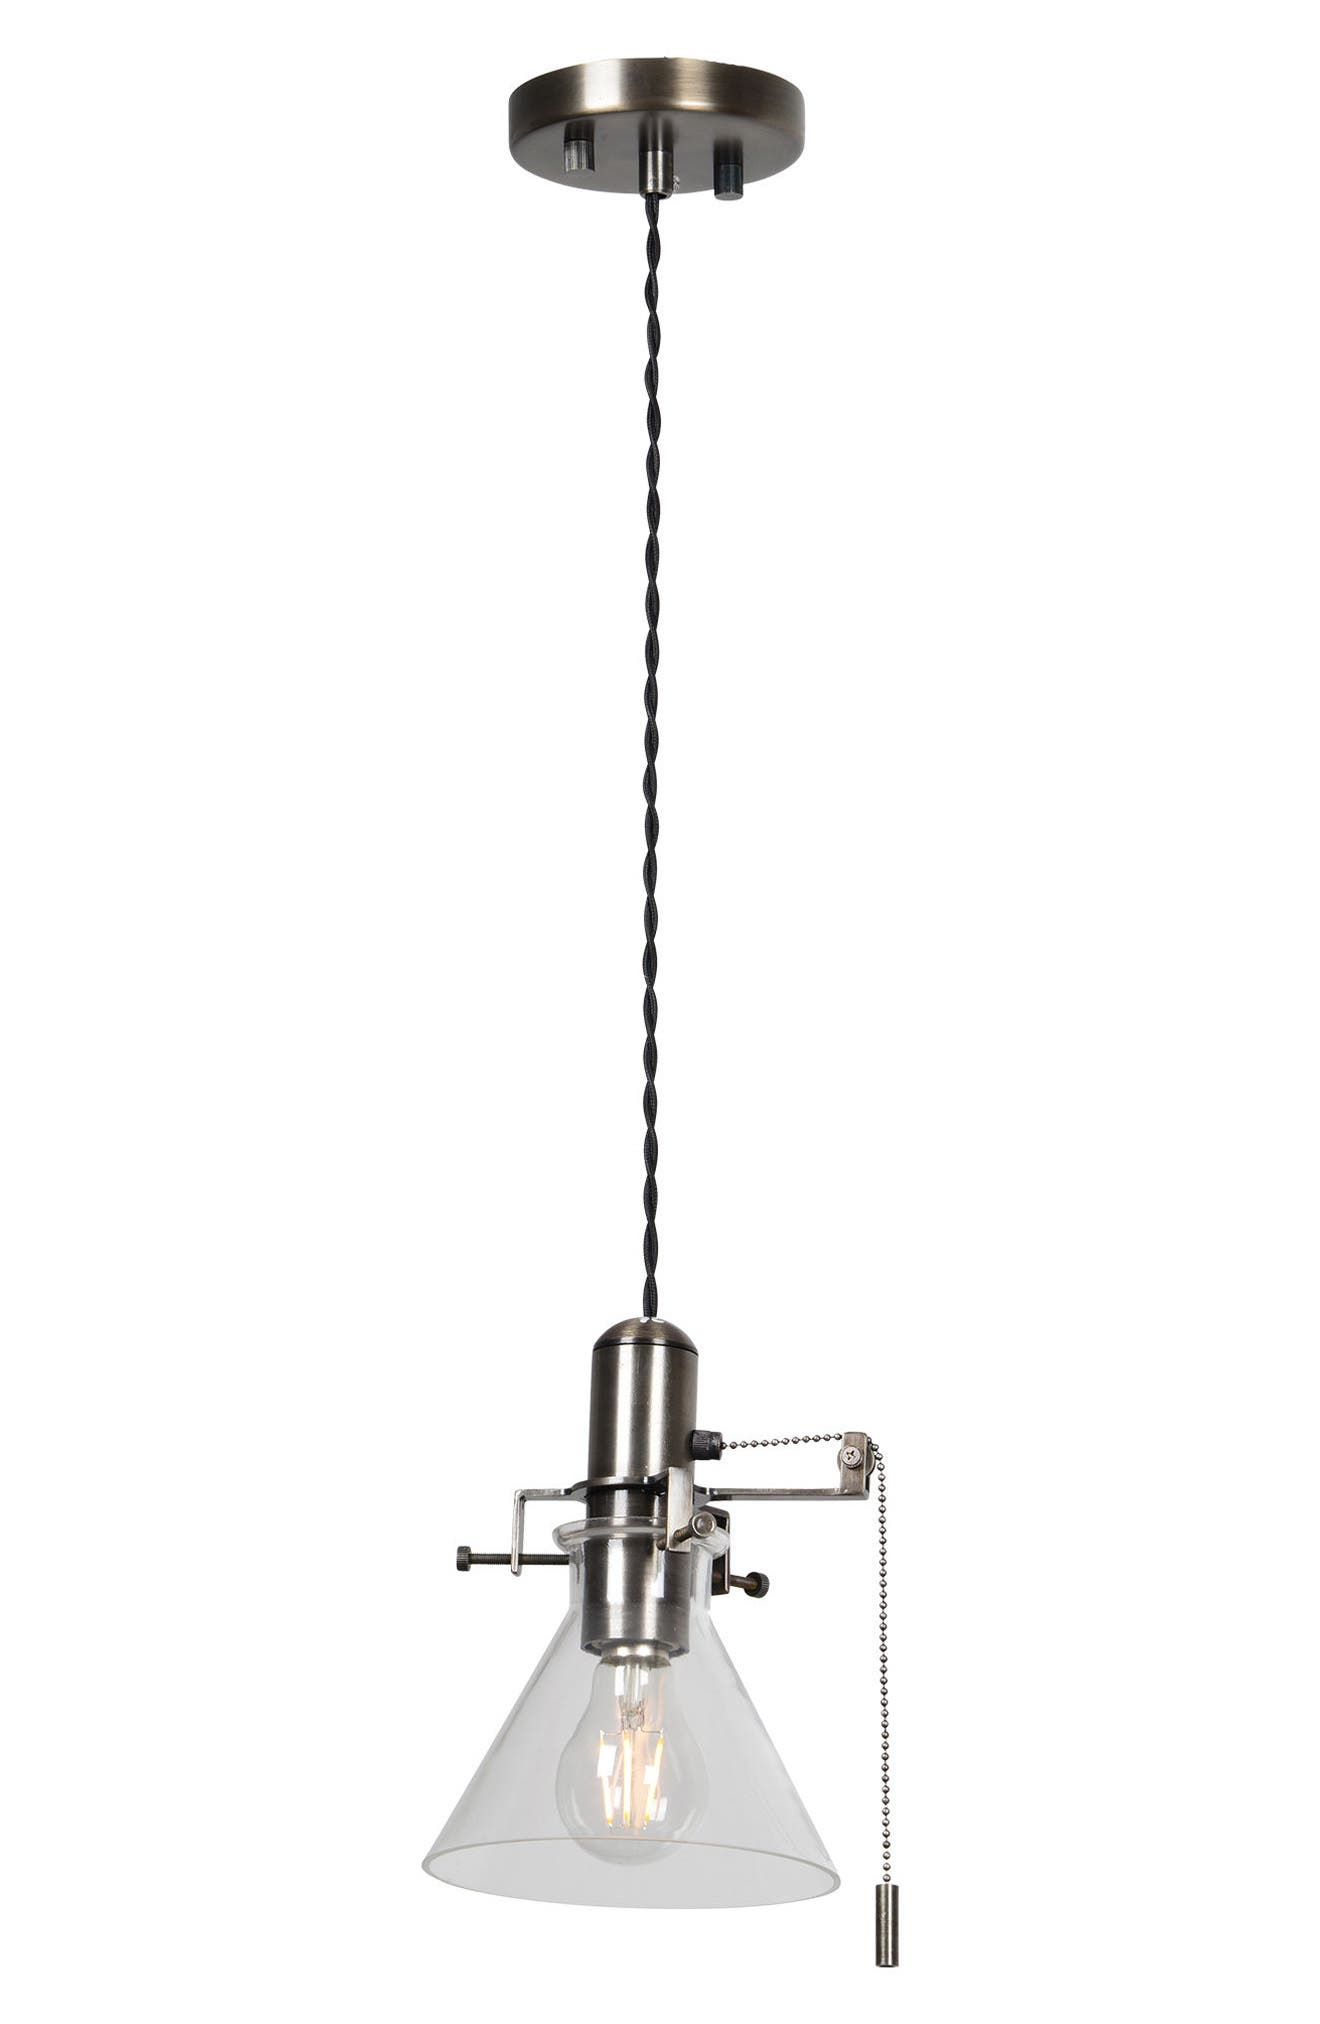 Pozzo Ceiling Light Fixture,                             Main thumbnail 1, color,                             040